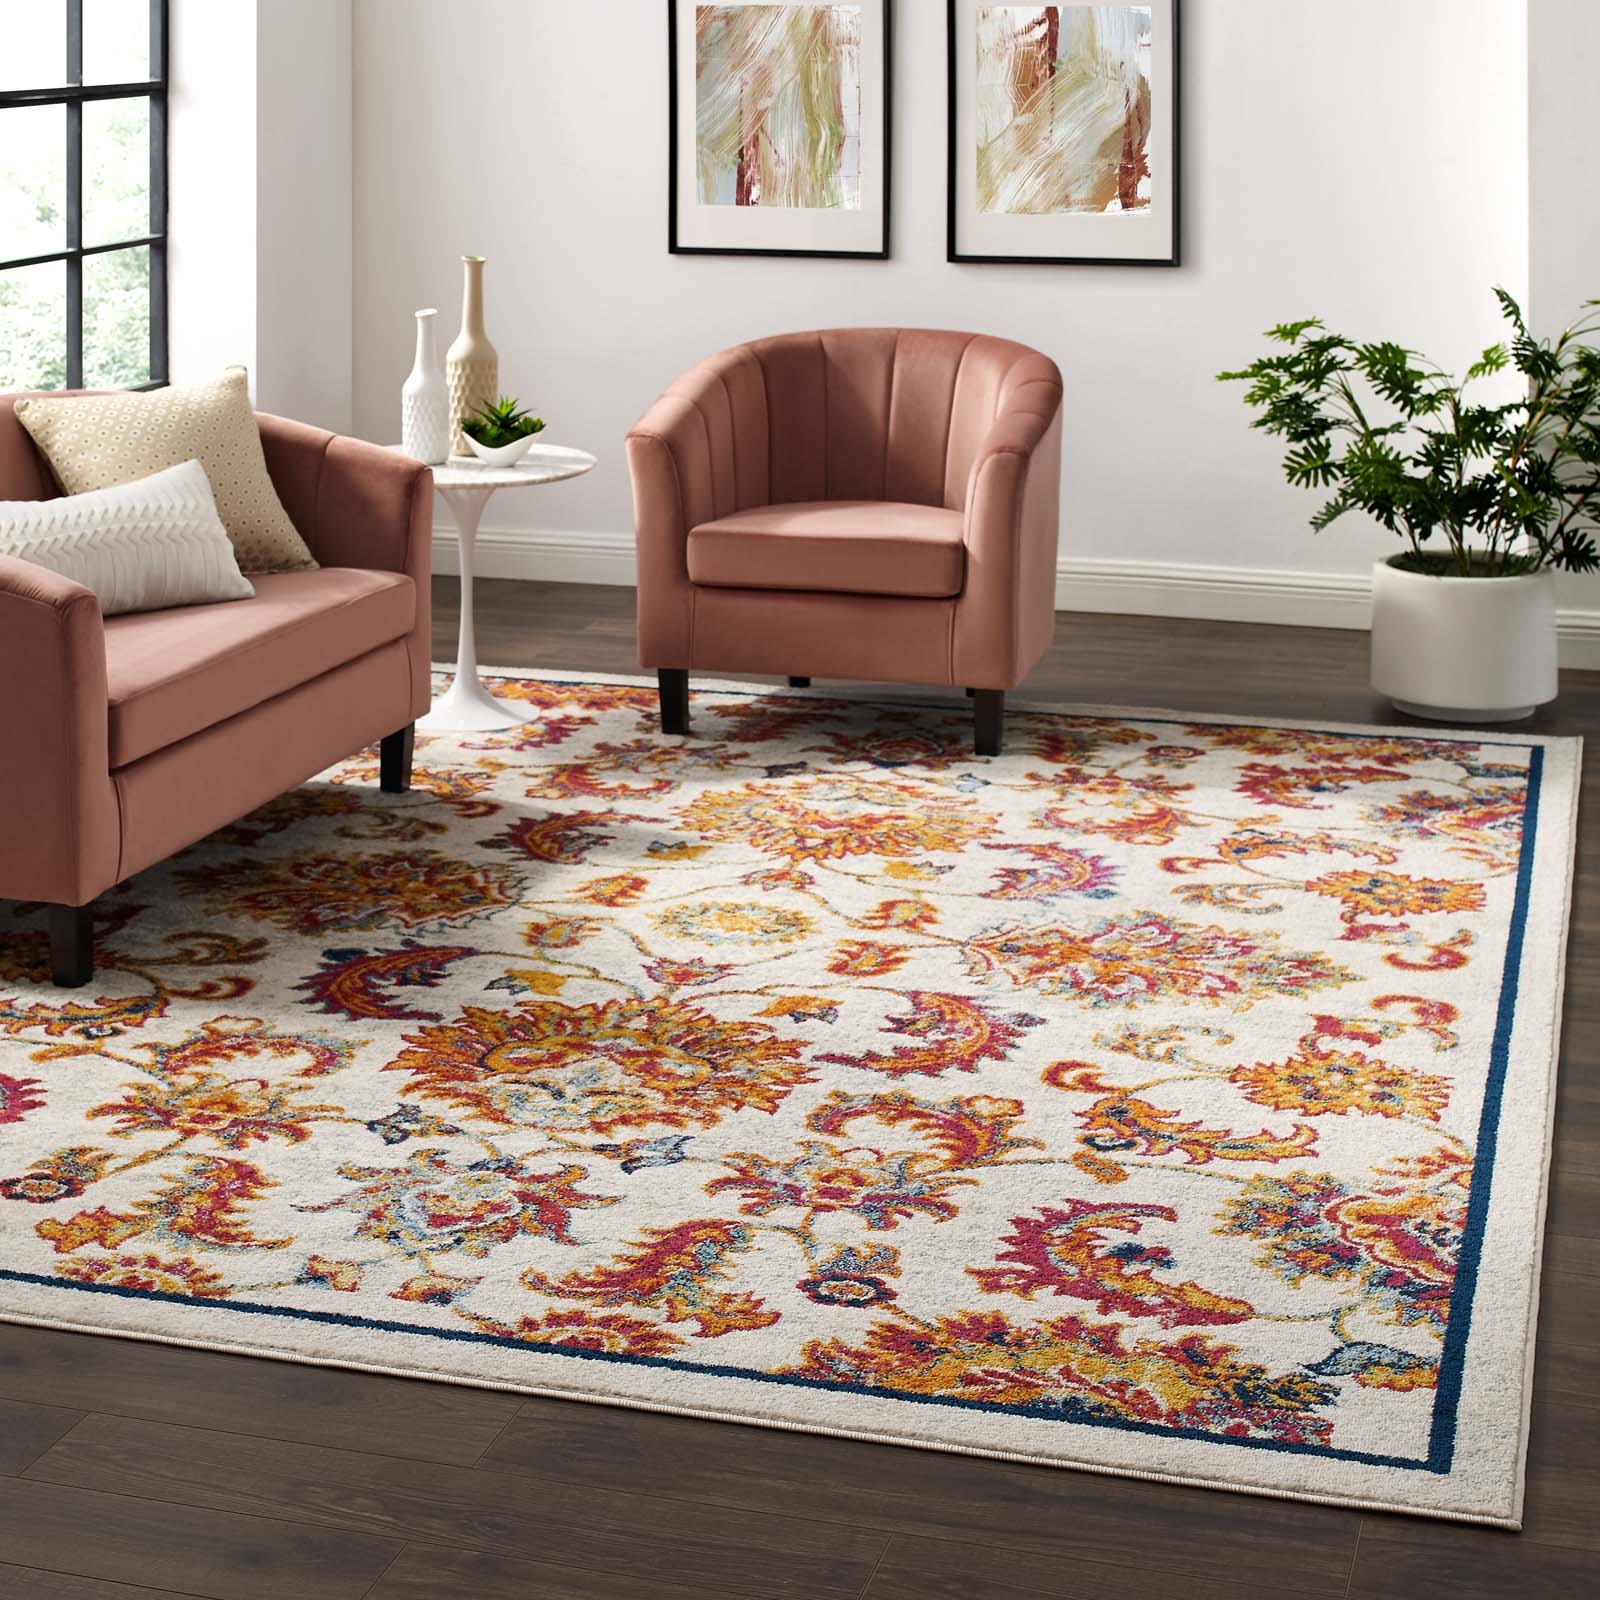 Entourage Azami Distressed Vintage Floral Lattice 8x10 Area Rug in Ivory, Blue, Orange, Yellow, Red